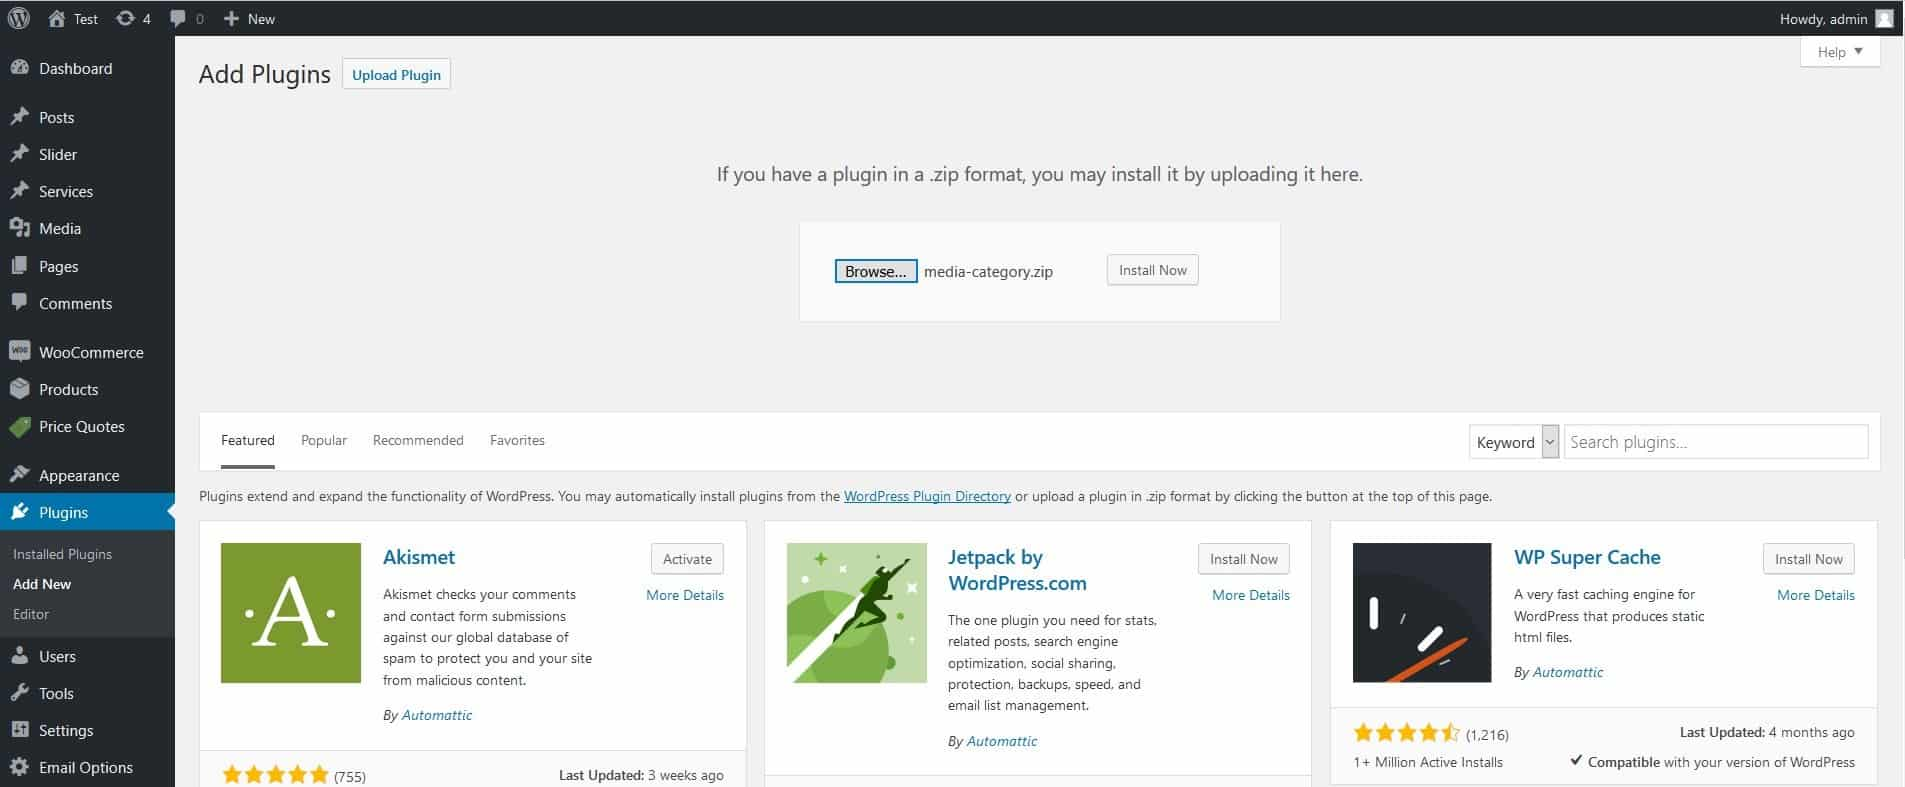 WordPress Media Category Plugin